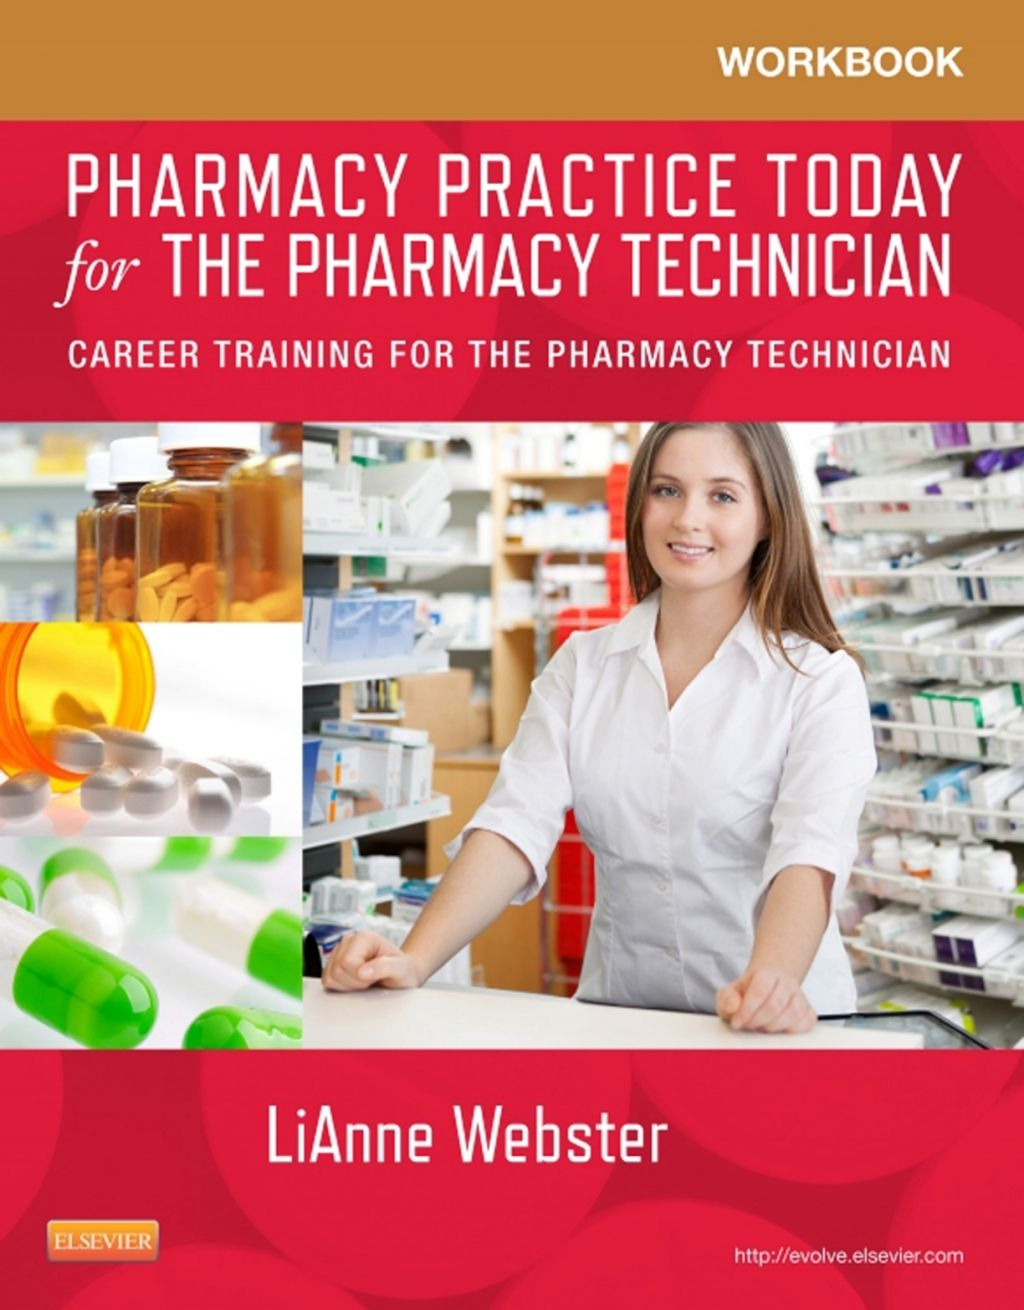 Workbook for Pharmacy Practice Today for the Pharmacy